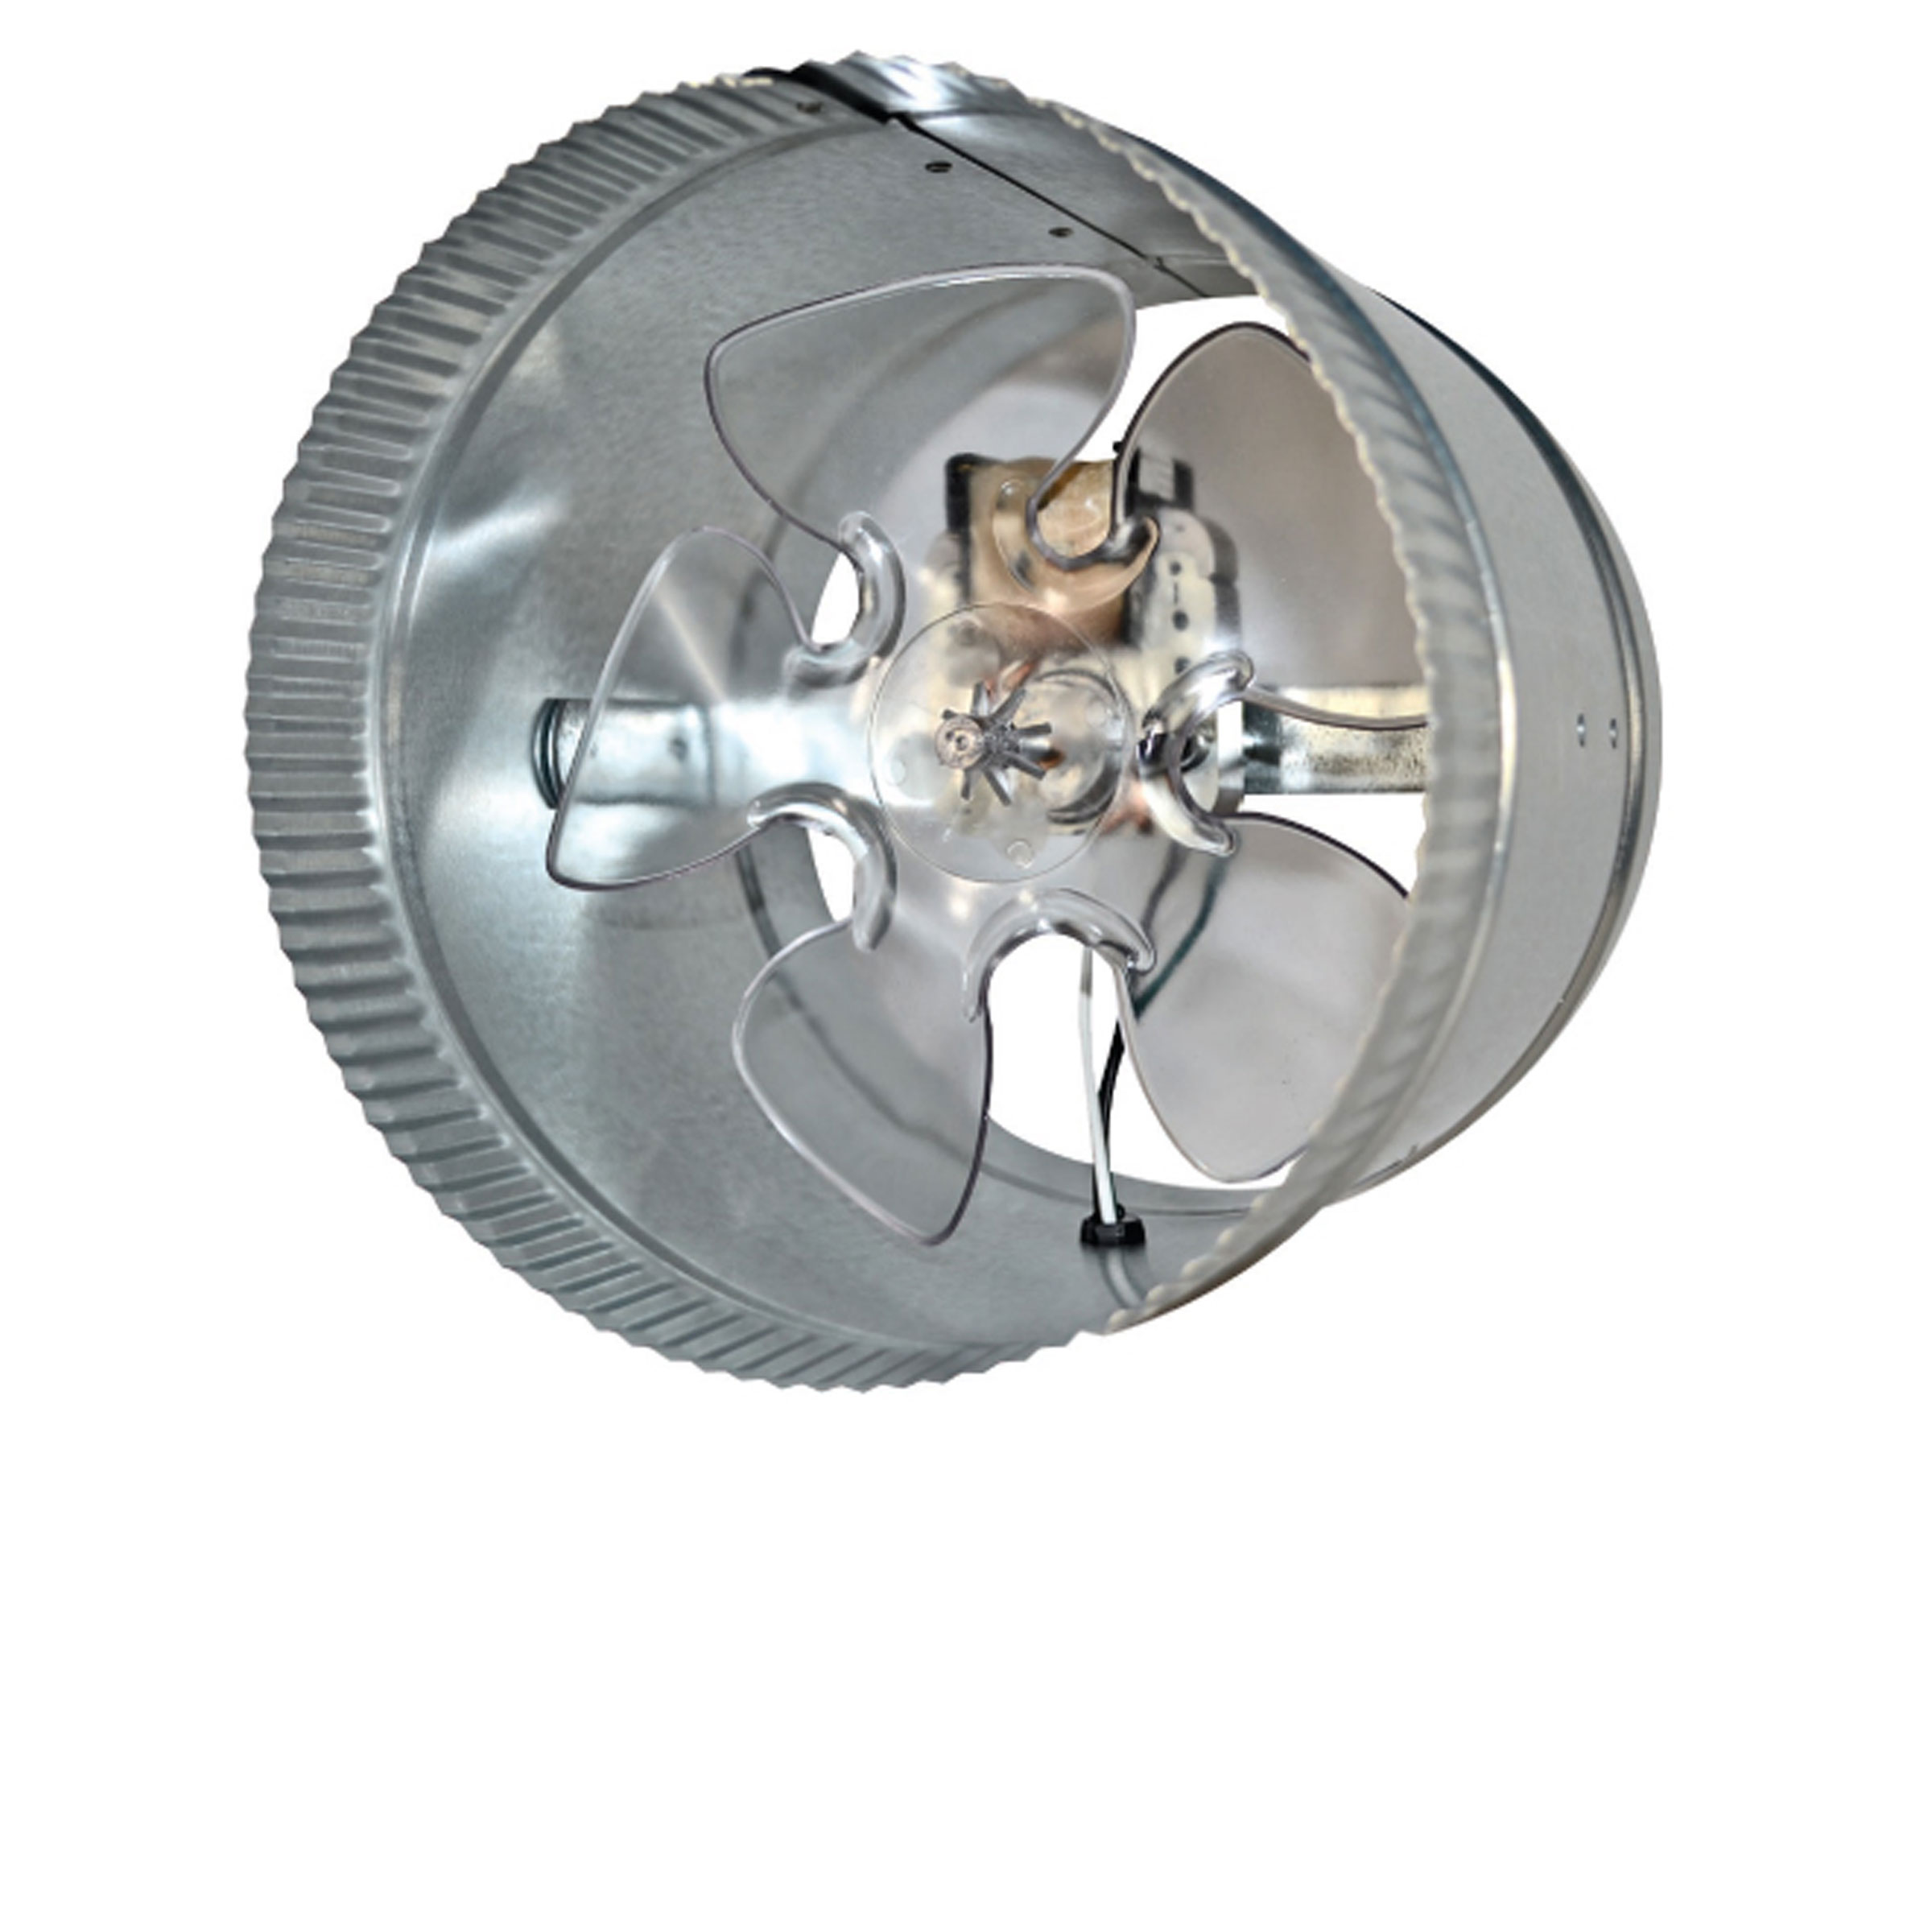 In Line Duct Fan Lowe S : Inductor fans images suncourt quot in